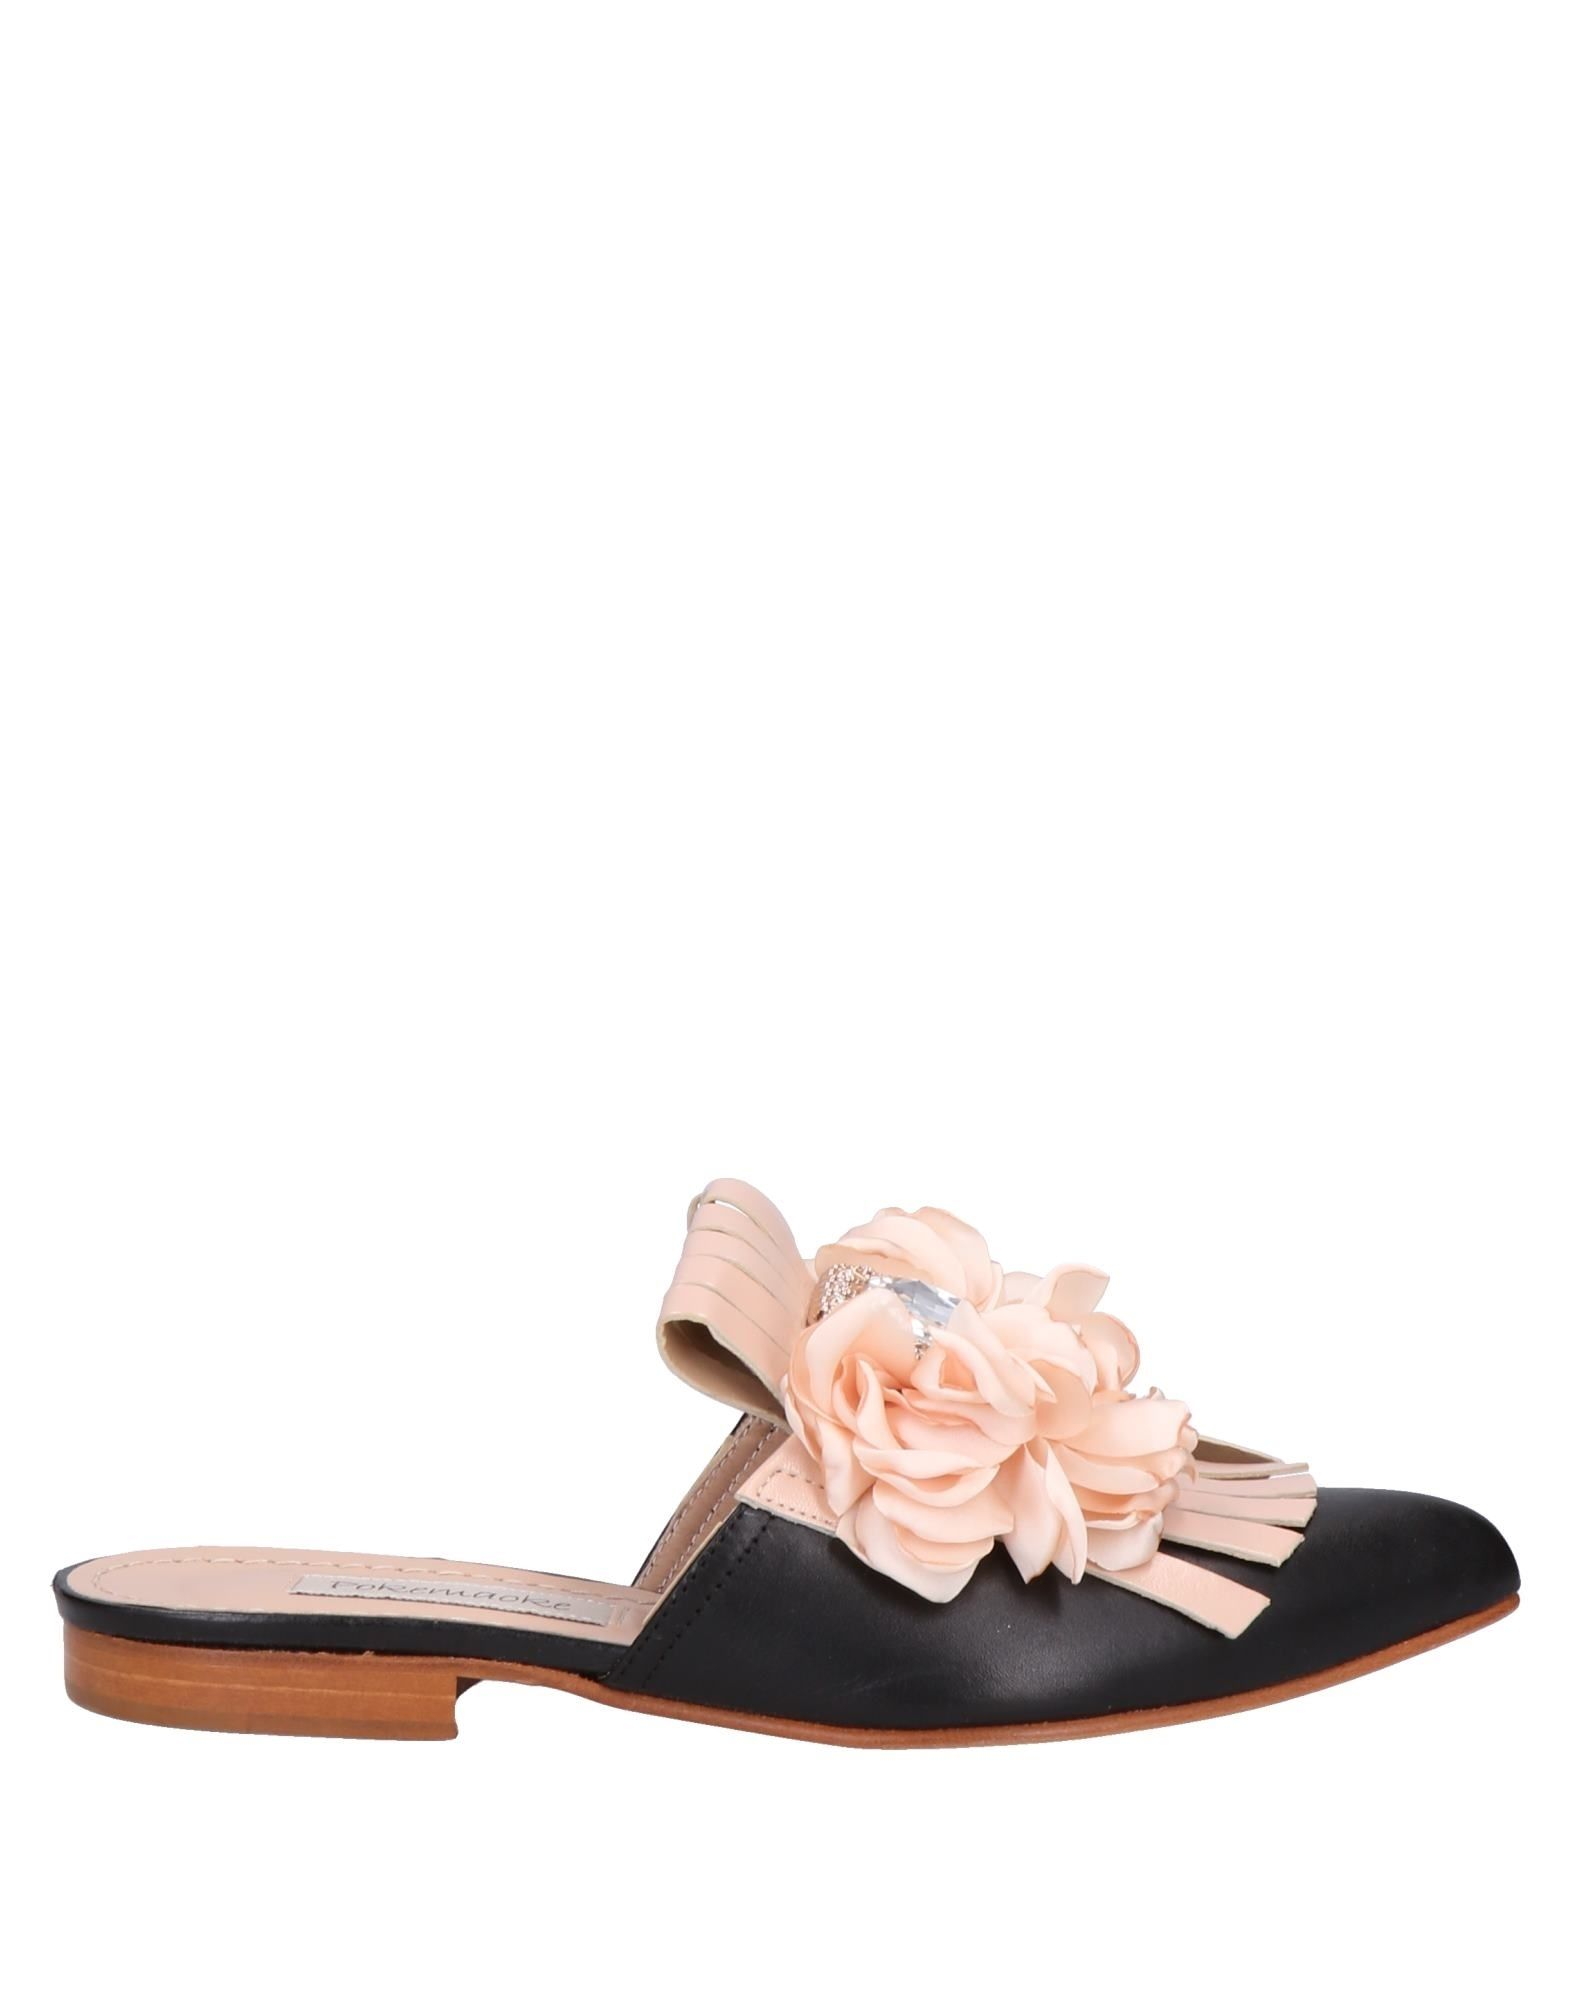 Pokemaoke Mules And Clogs In Light Pink